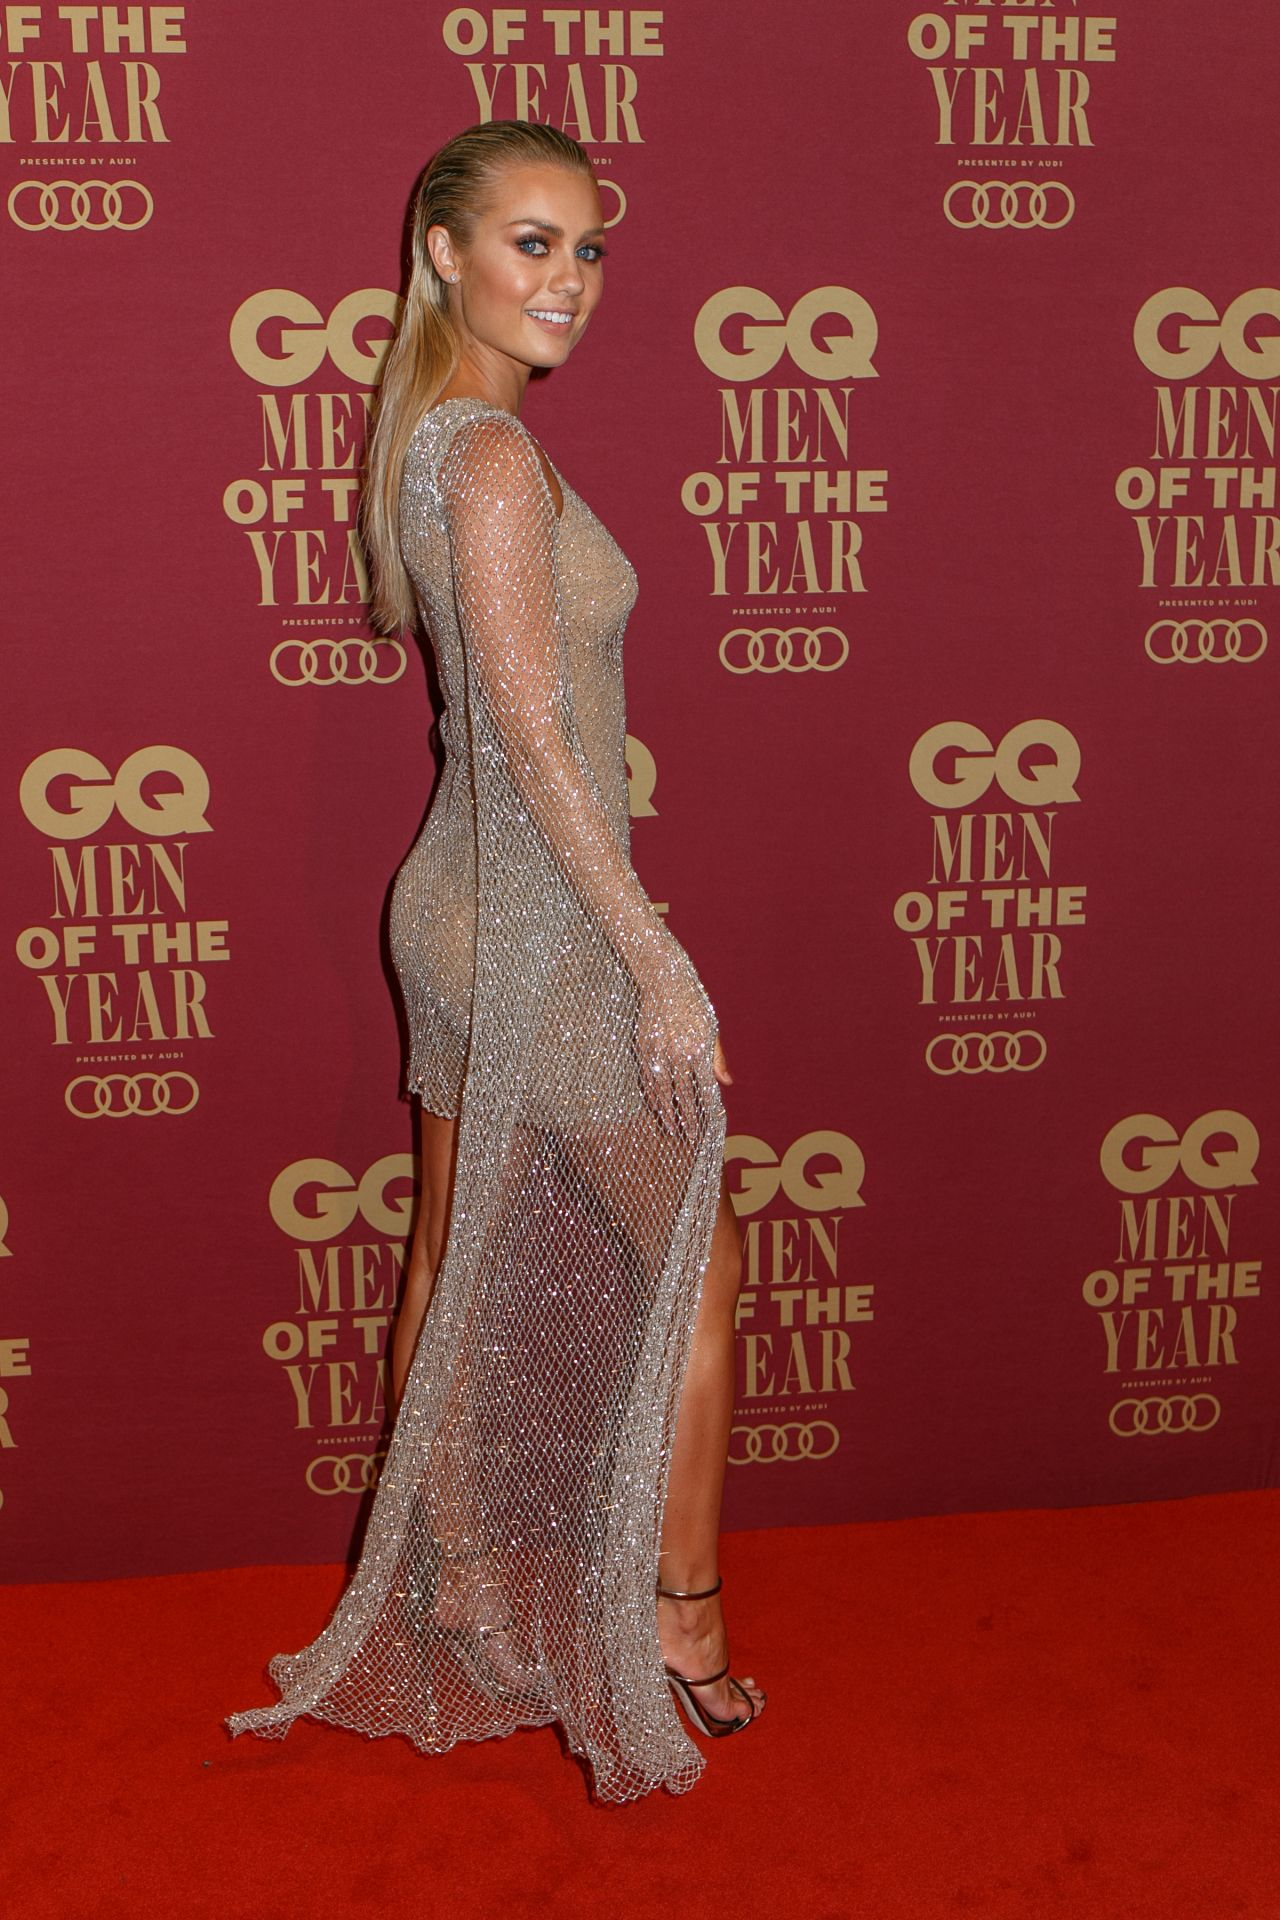 Elyse Knowles 2017 Gq Men Of The Year Awards In Sydney